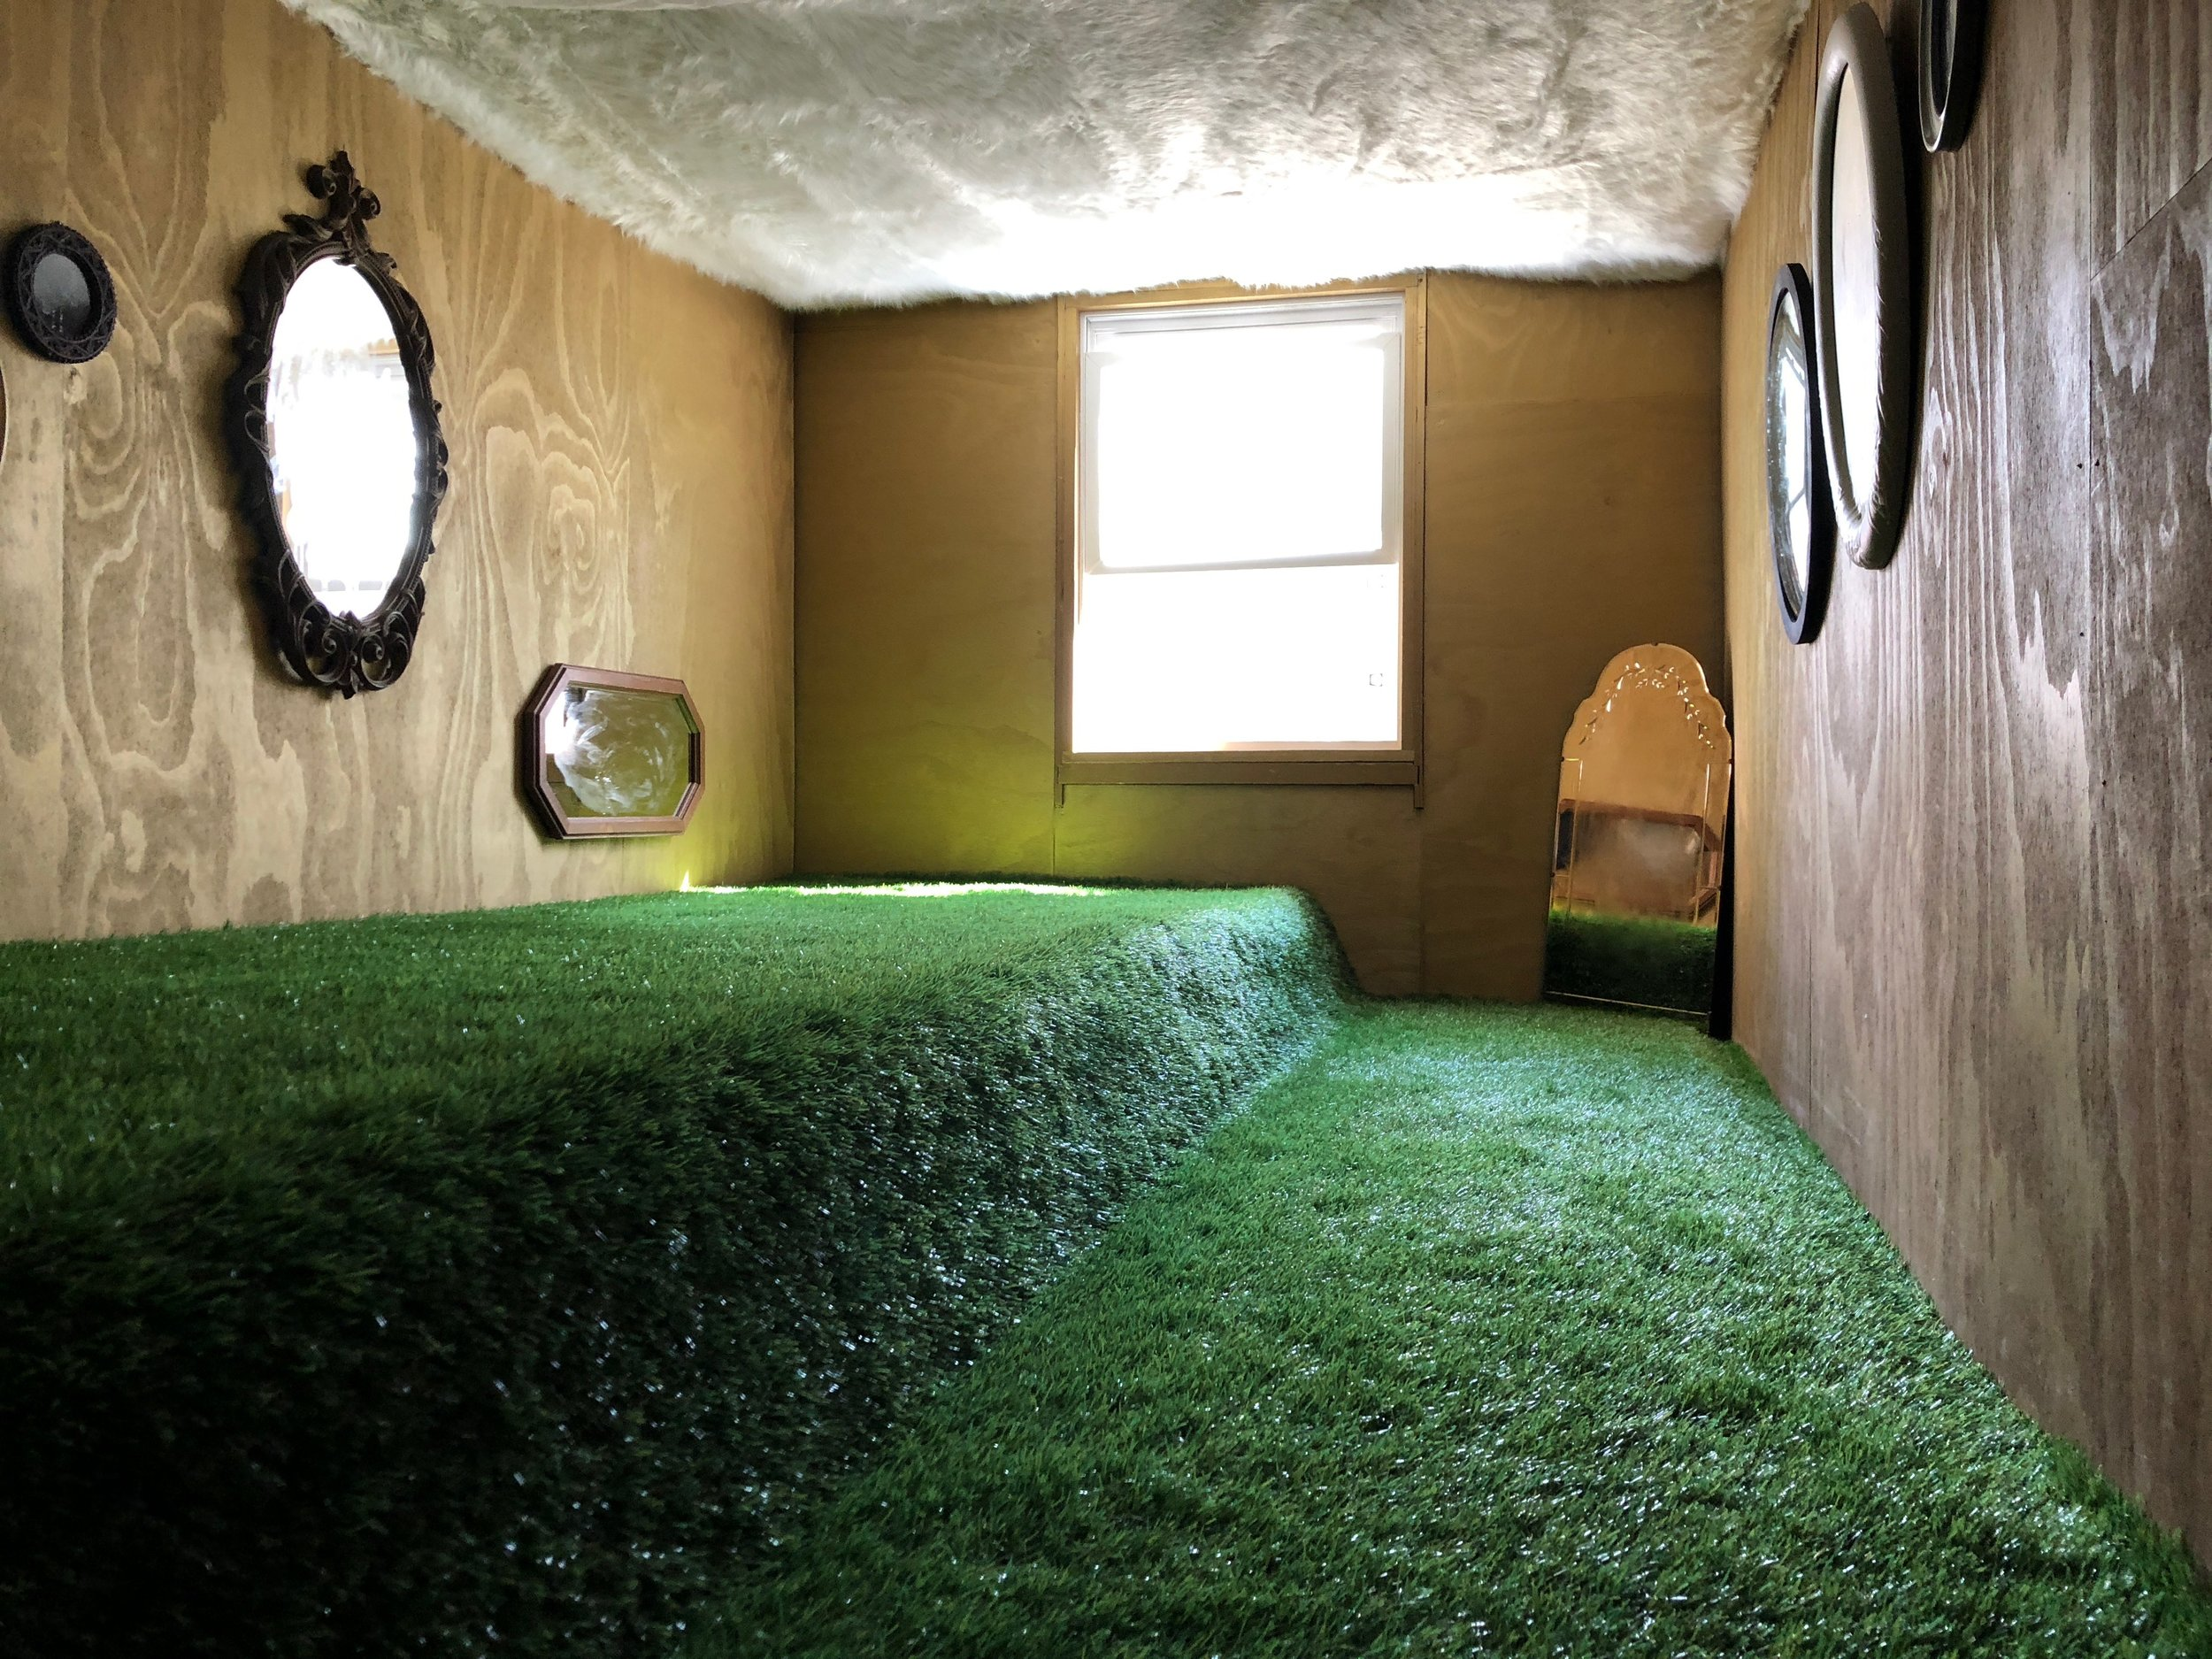 "Golden Attic aka Grandma's Jersey House, 1985   132"" x 60"" x 108""  Golden wood panels, plastic grass, fur clouds, scrying mirrors, scent of wet dirt  (2018)"